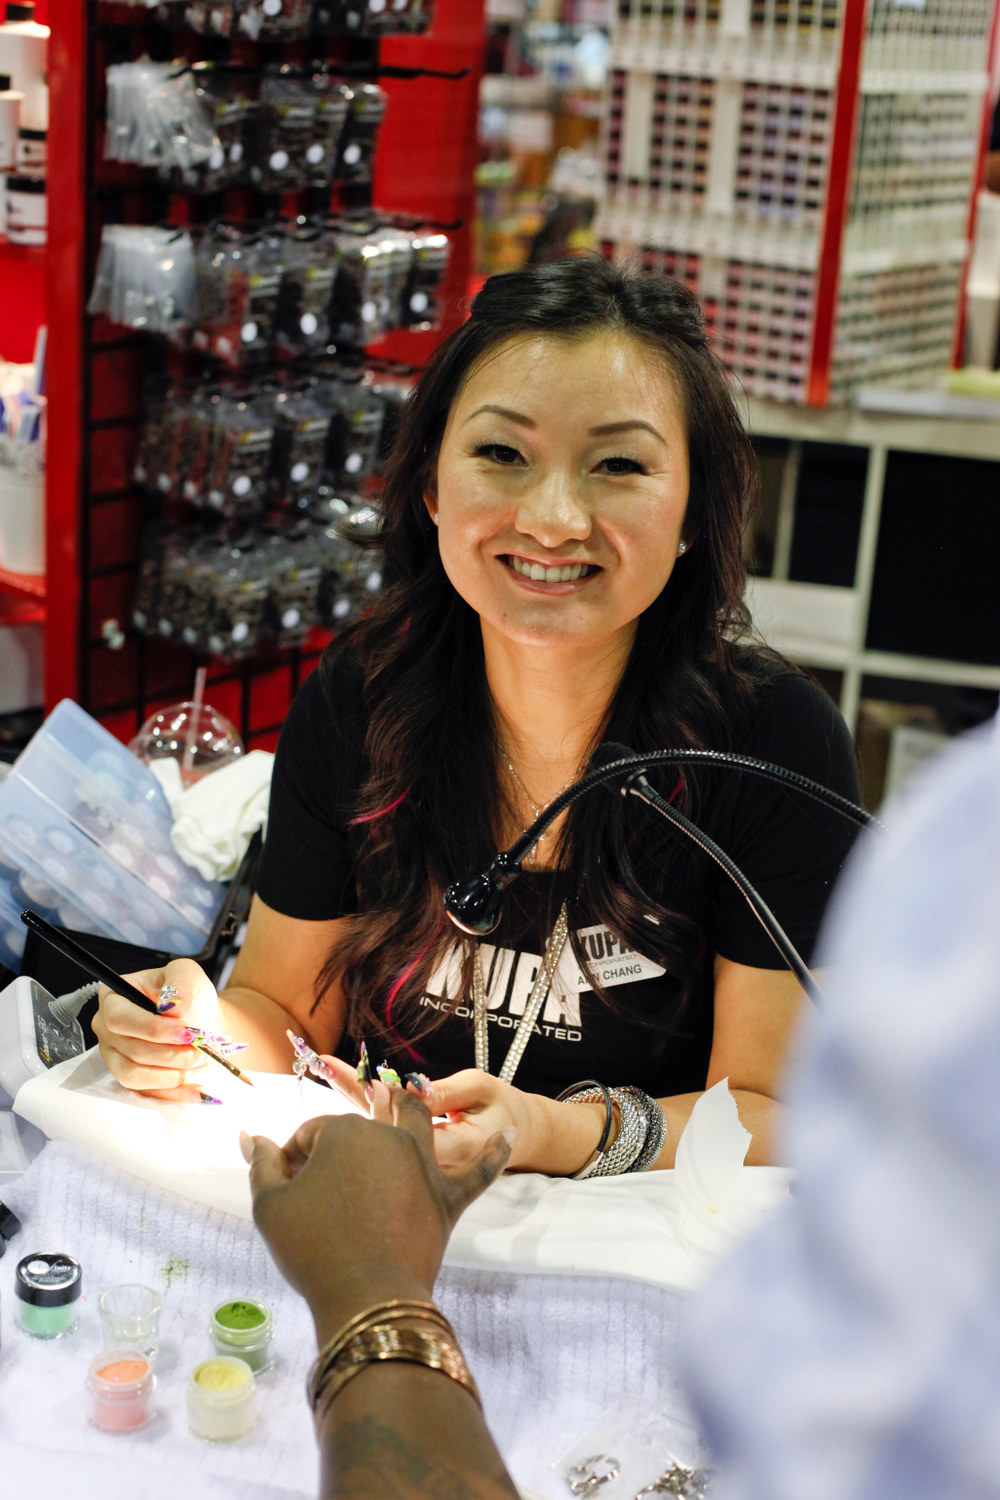 <p>Kupa educator Ann Chang stayed busy during the show creating 3-D acrylic flowers and enhancements.</p>